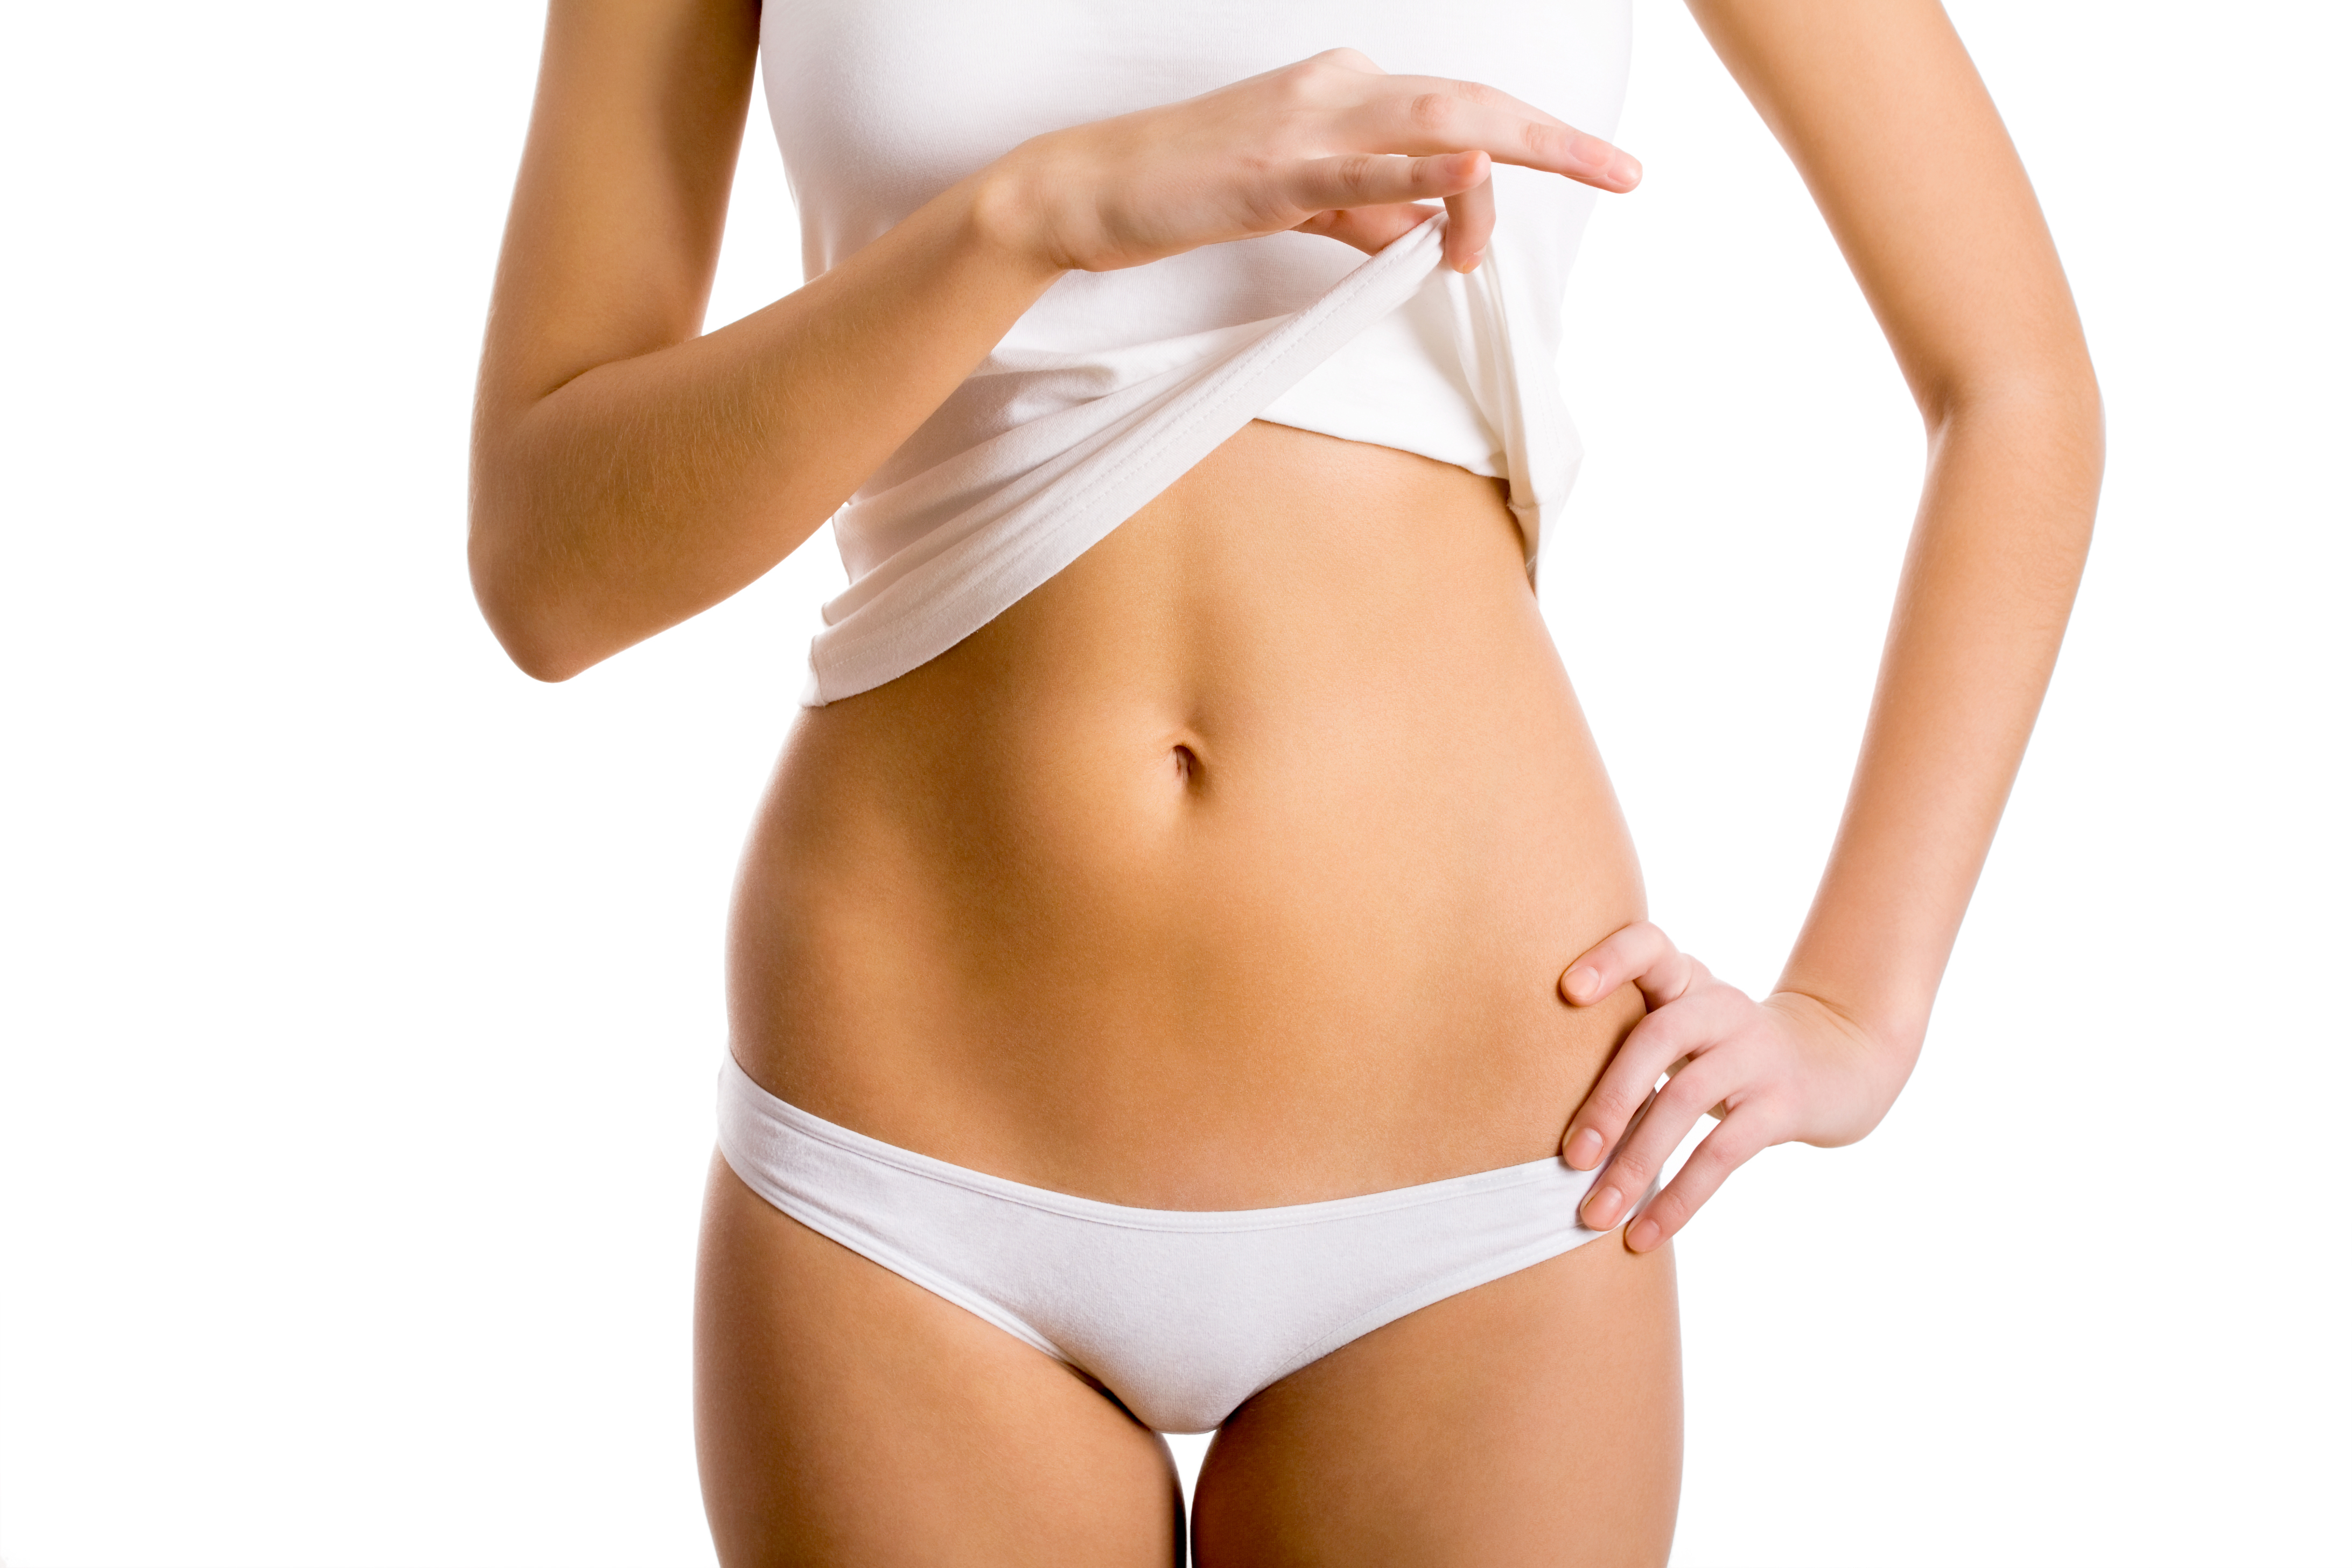 5 Things to Know About a Tummy Tuck